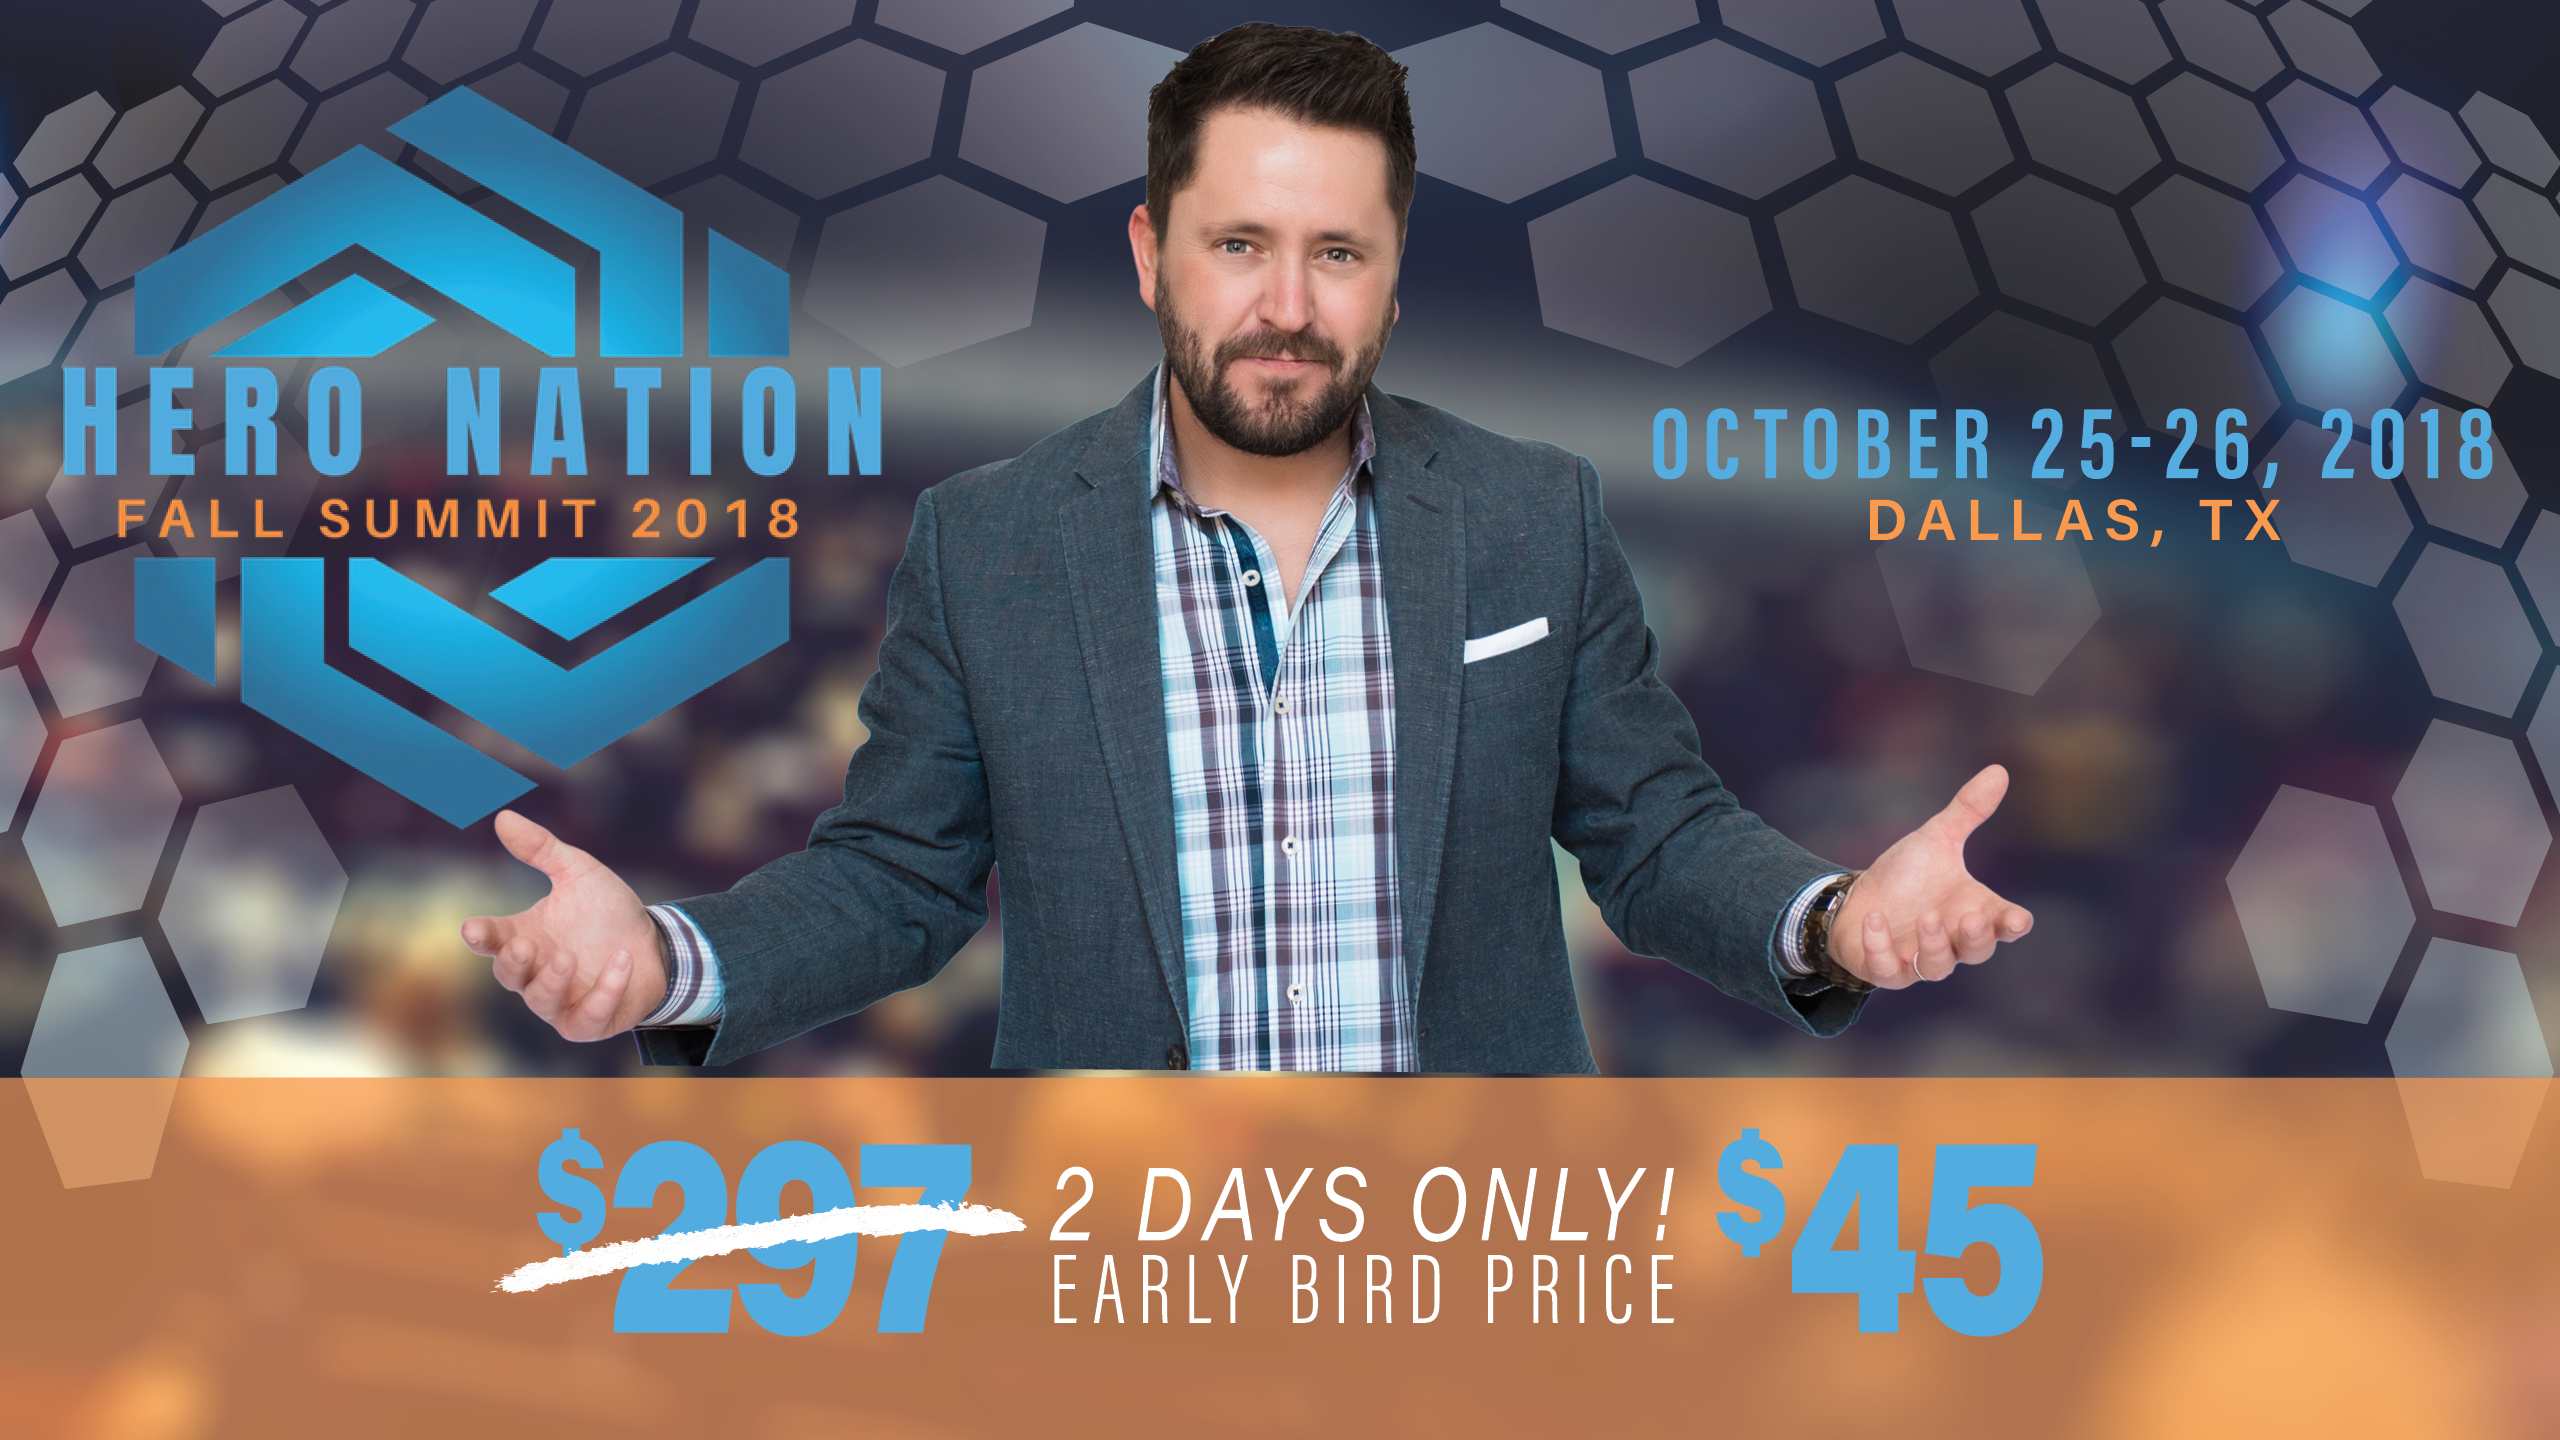 Hero Nation Fall Summit